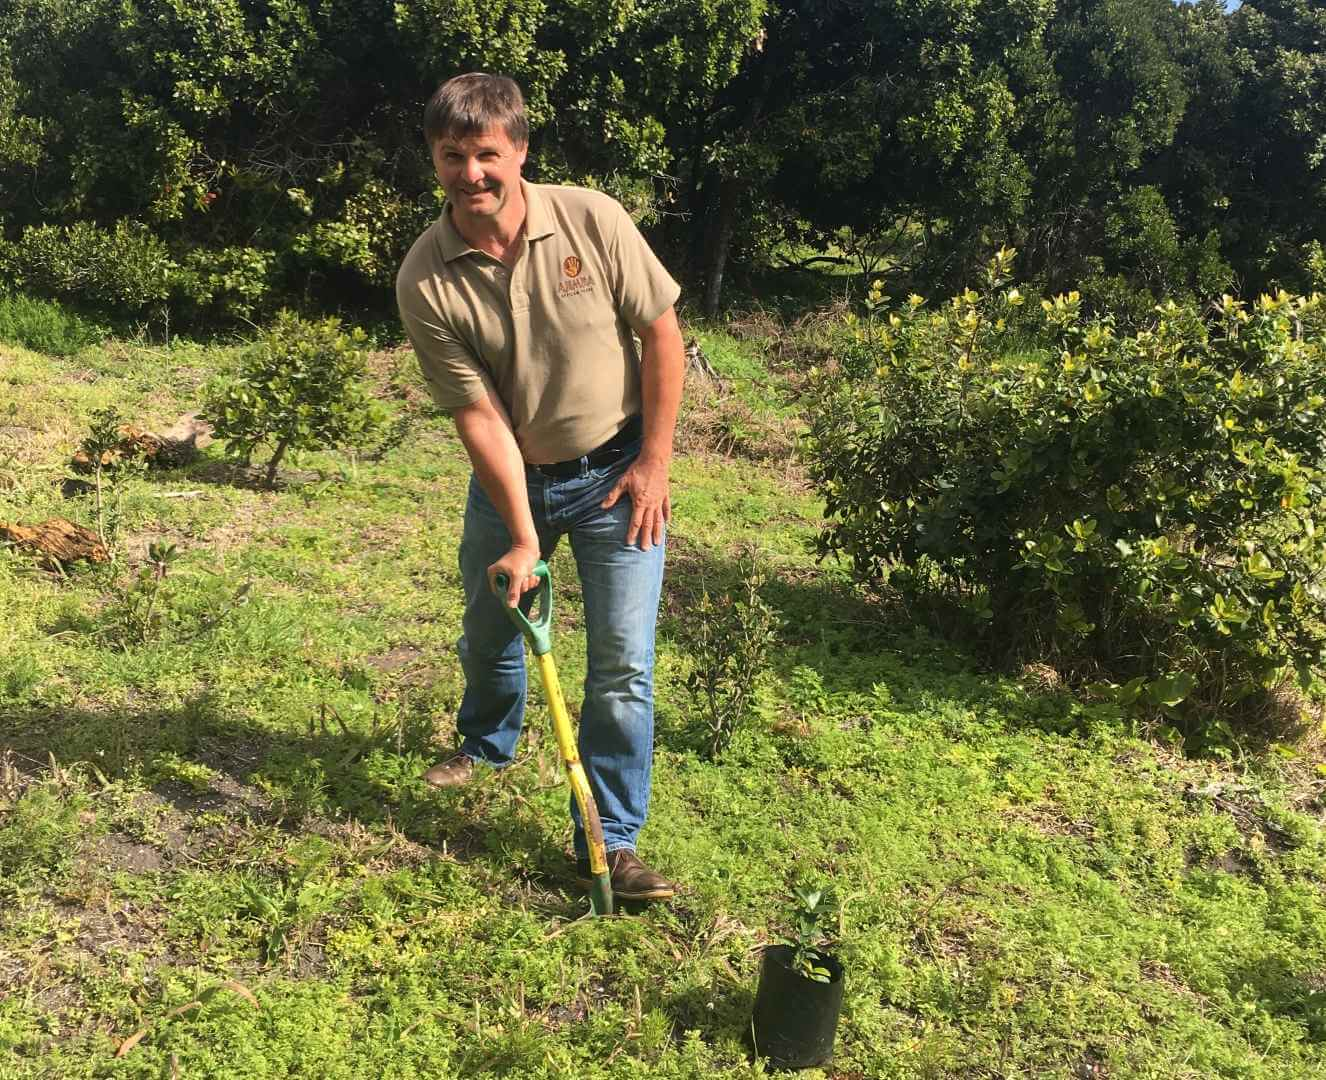 Ajimba plants tree at Grootbos